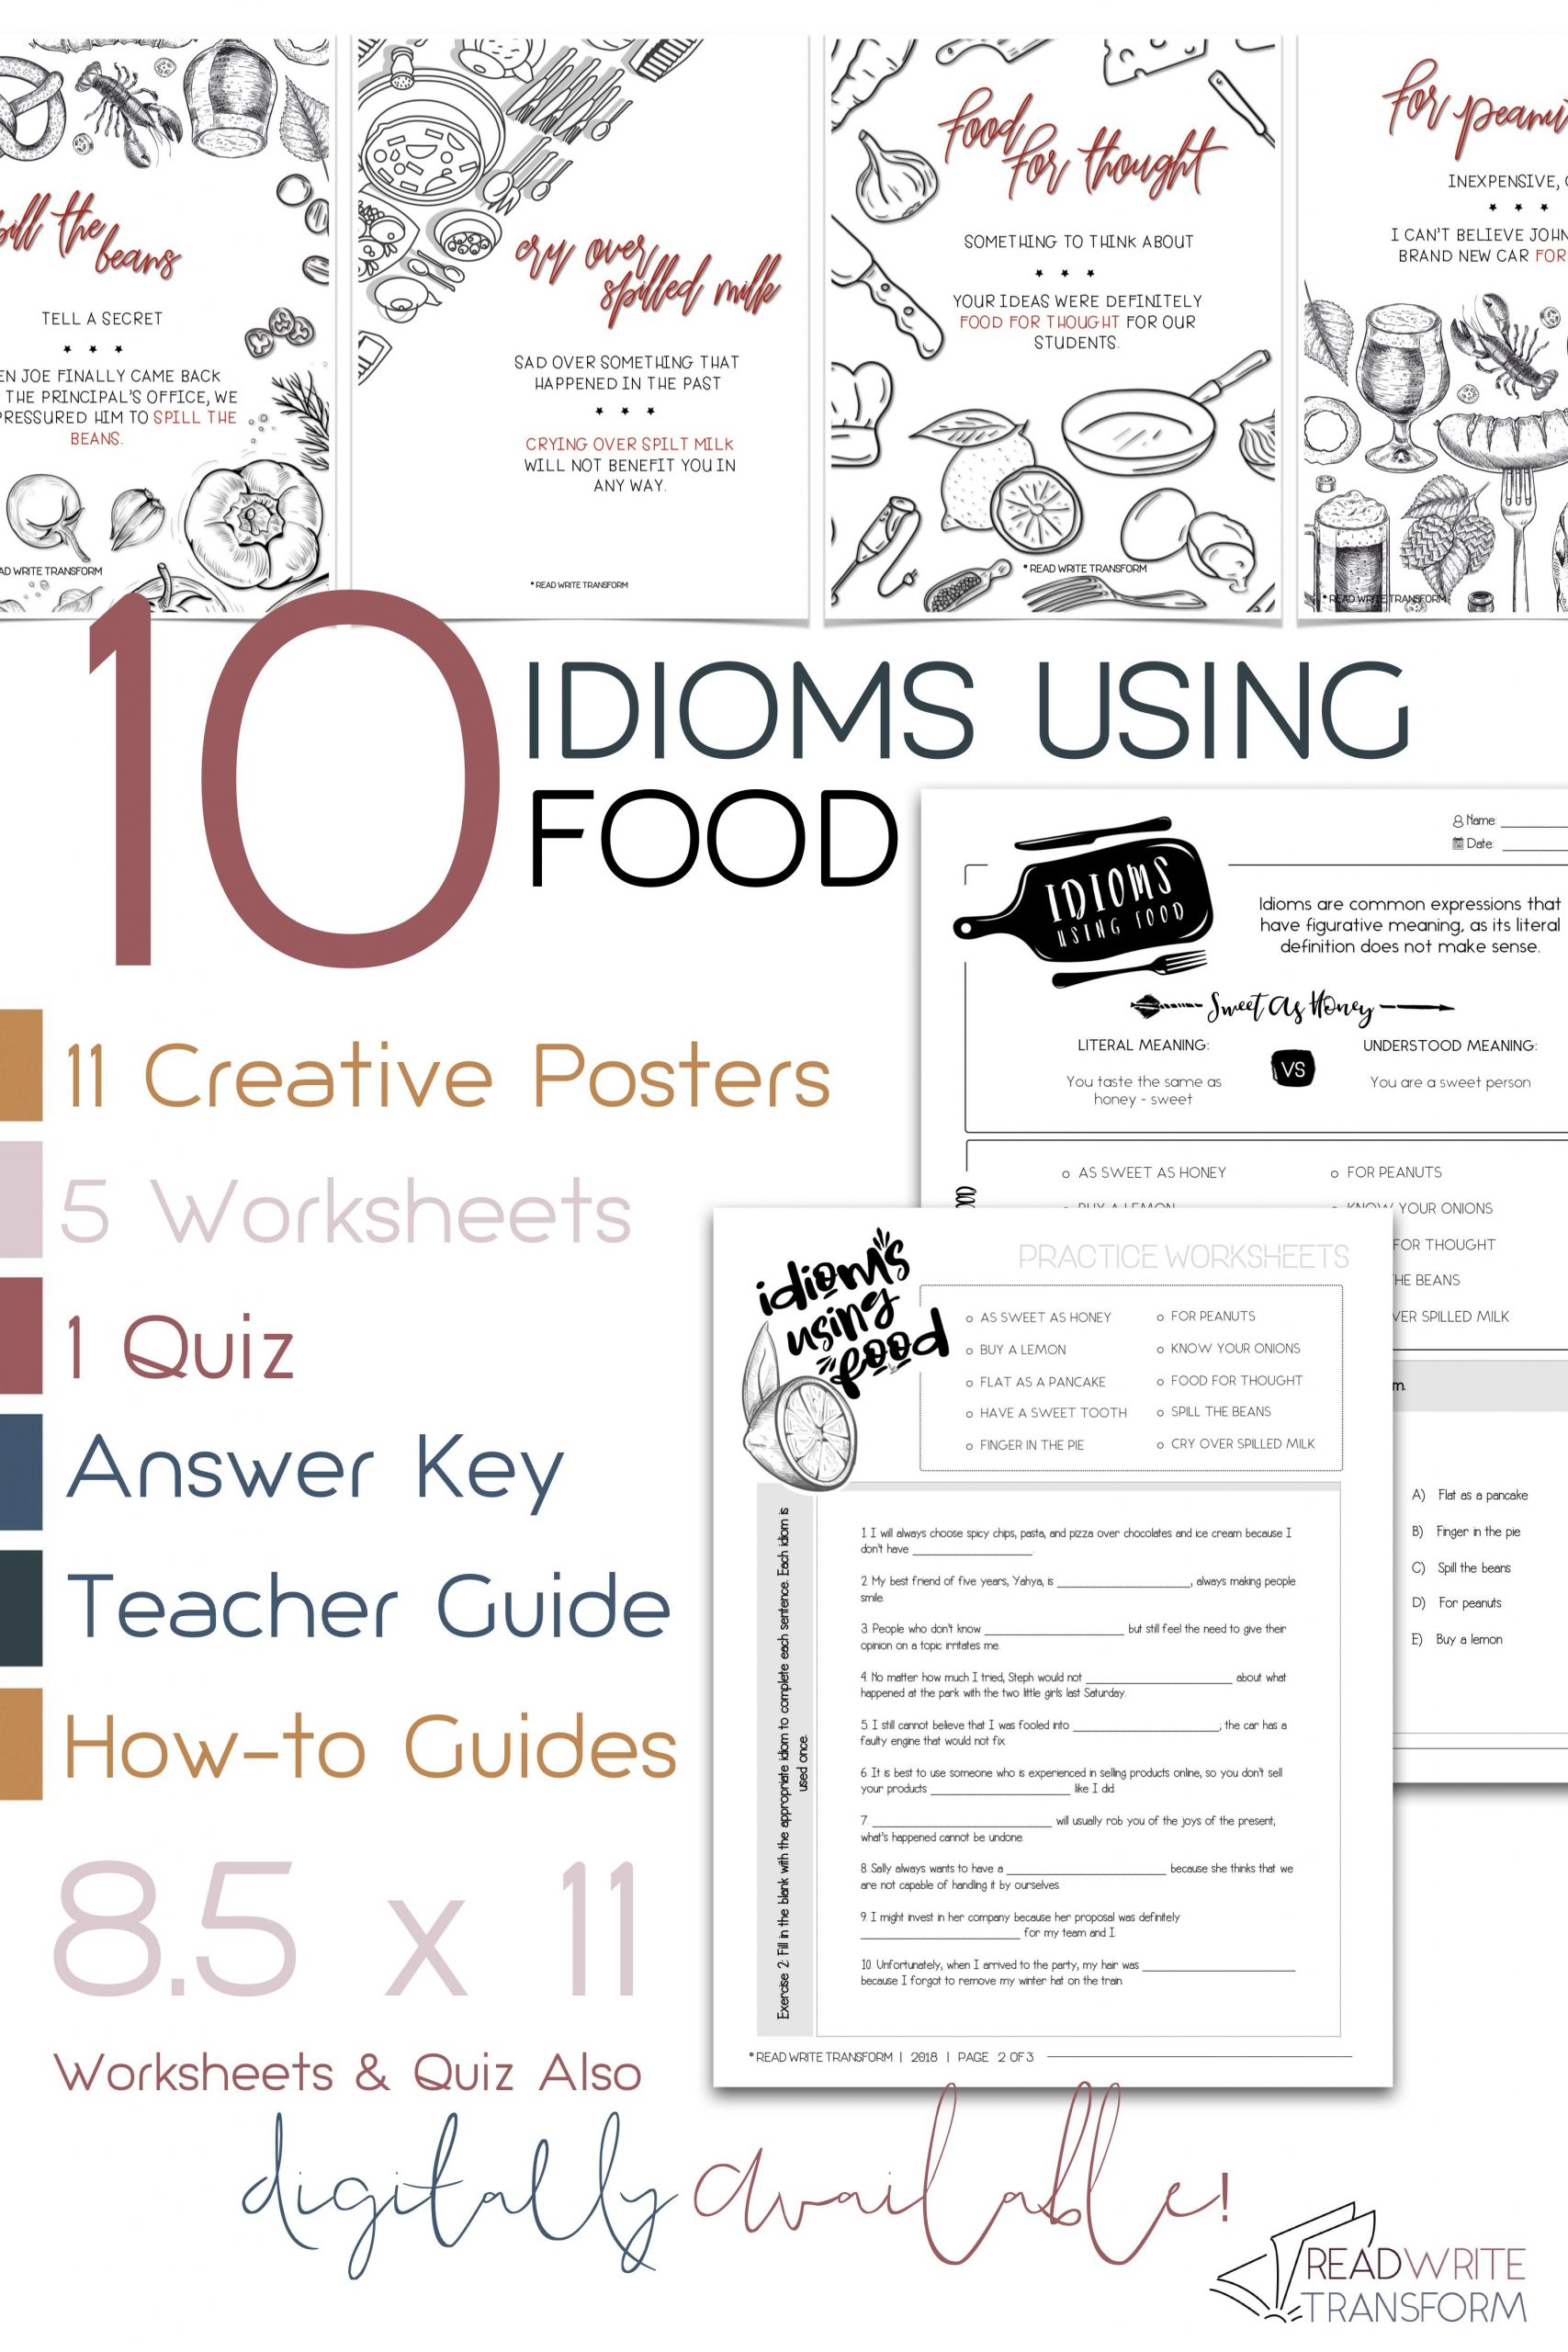 Idiom Worksheets for 2nd Grade 10 Idioms Using Food Posters Worksheets Quiz Digital